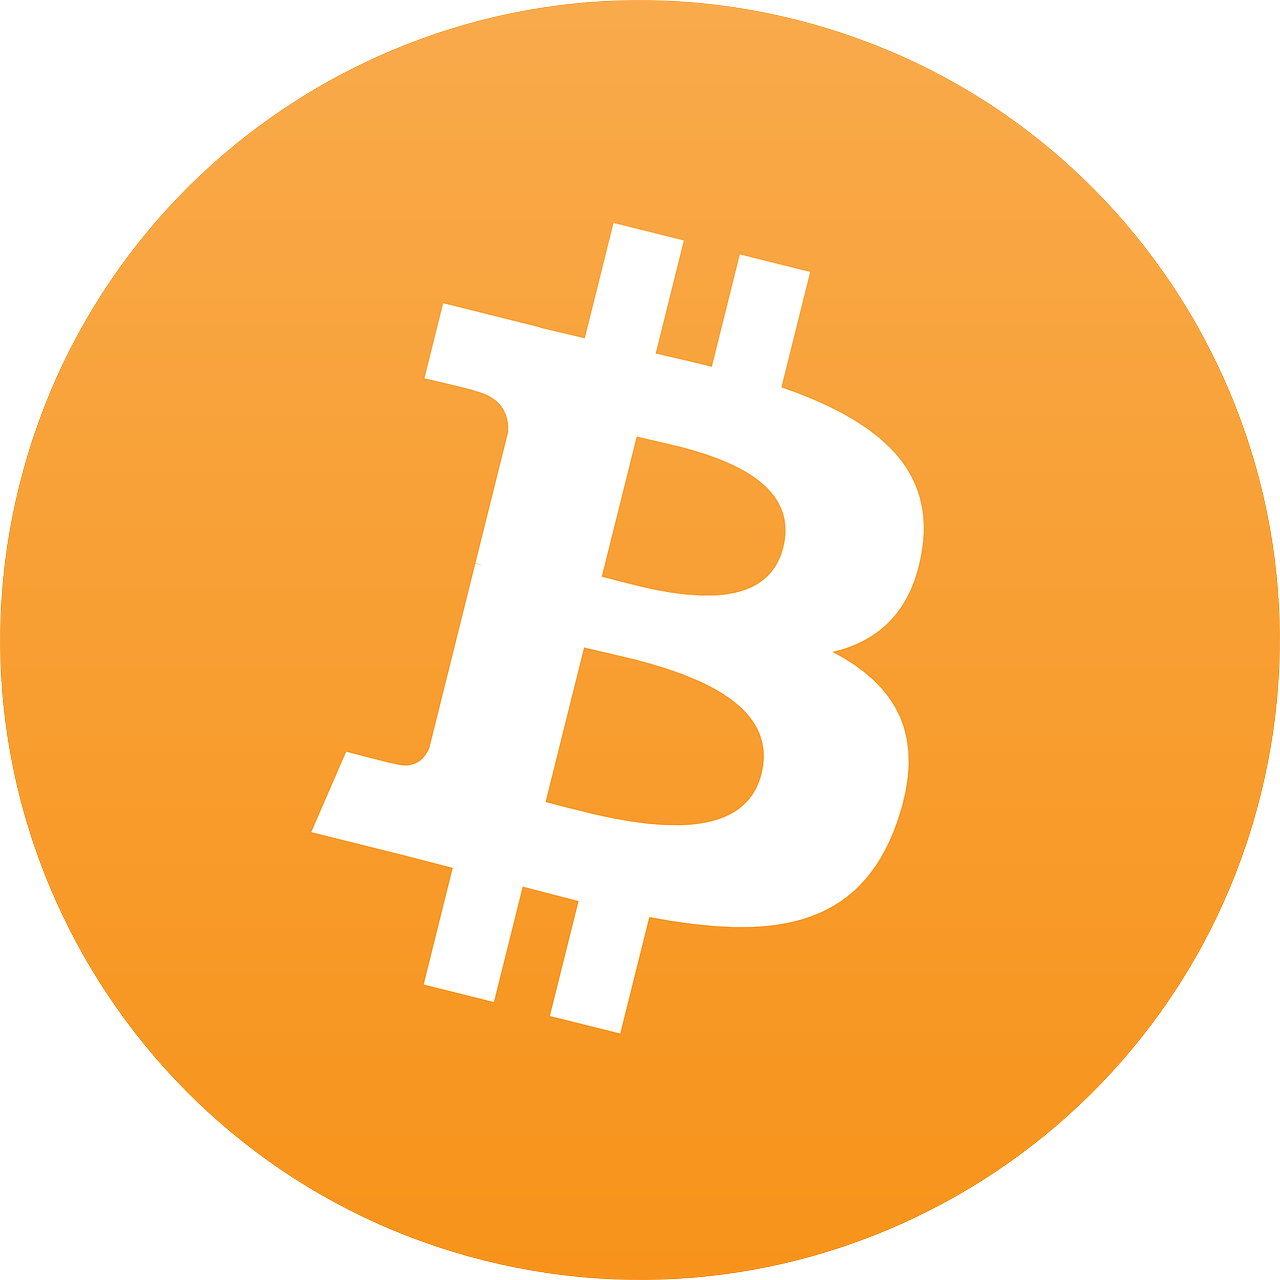 What is Bitcoin Cash?